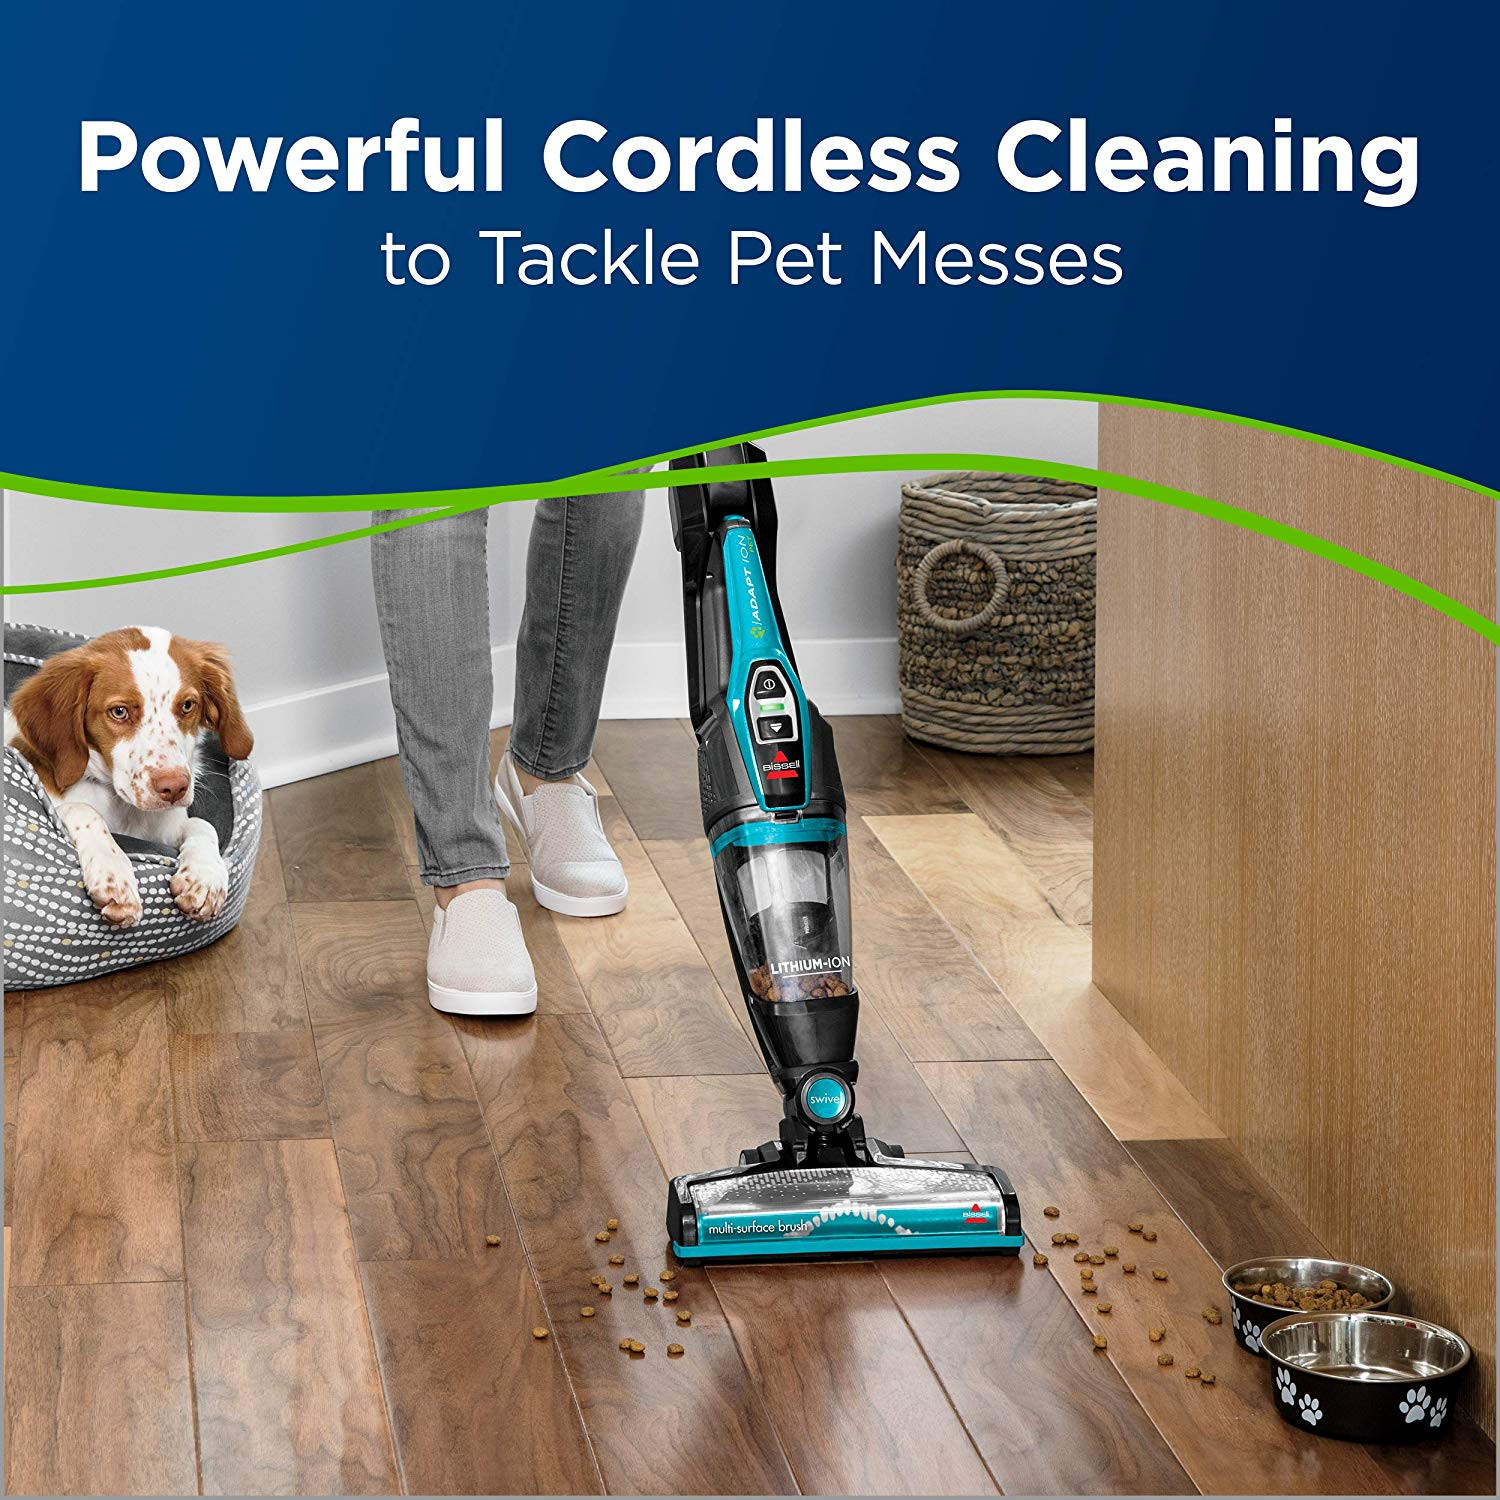 best cordless vacuum for pet hair on hardwood floors of amazon com bissell adapt ion pet 2 in 1 lithium ion cordless stick in amazon com bissell adapt ion pet 2 in 1 lithium ion cordless stick vacuum 2286a teal